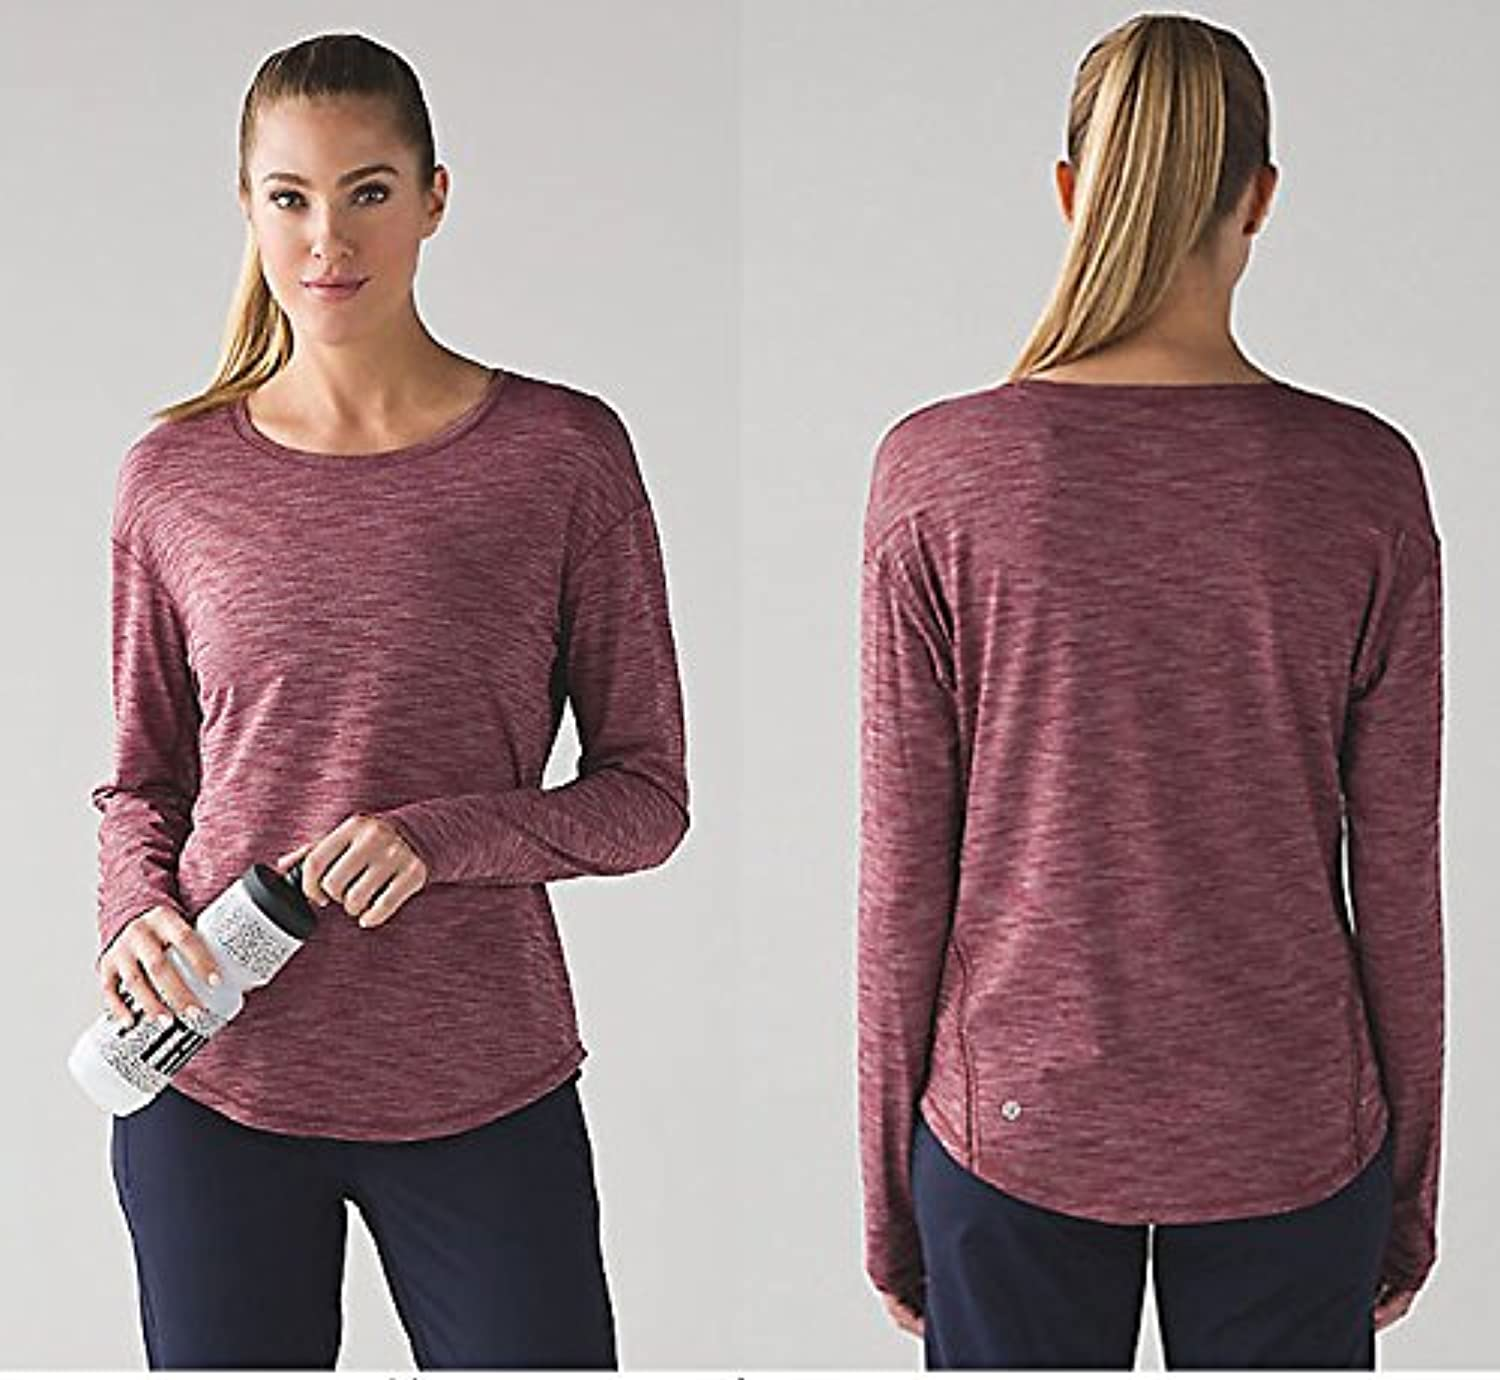 Qsheulx Yoga Suit Long Sleeved Female Running Fitness Yoga Body Speed Dry Long Sleeved Lemon,L,C301 color Woven Autumn Long Sleeved Yarn Dyed Red